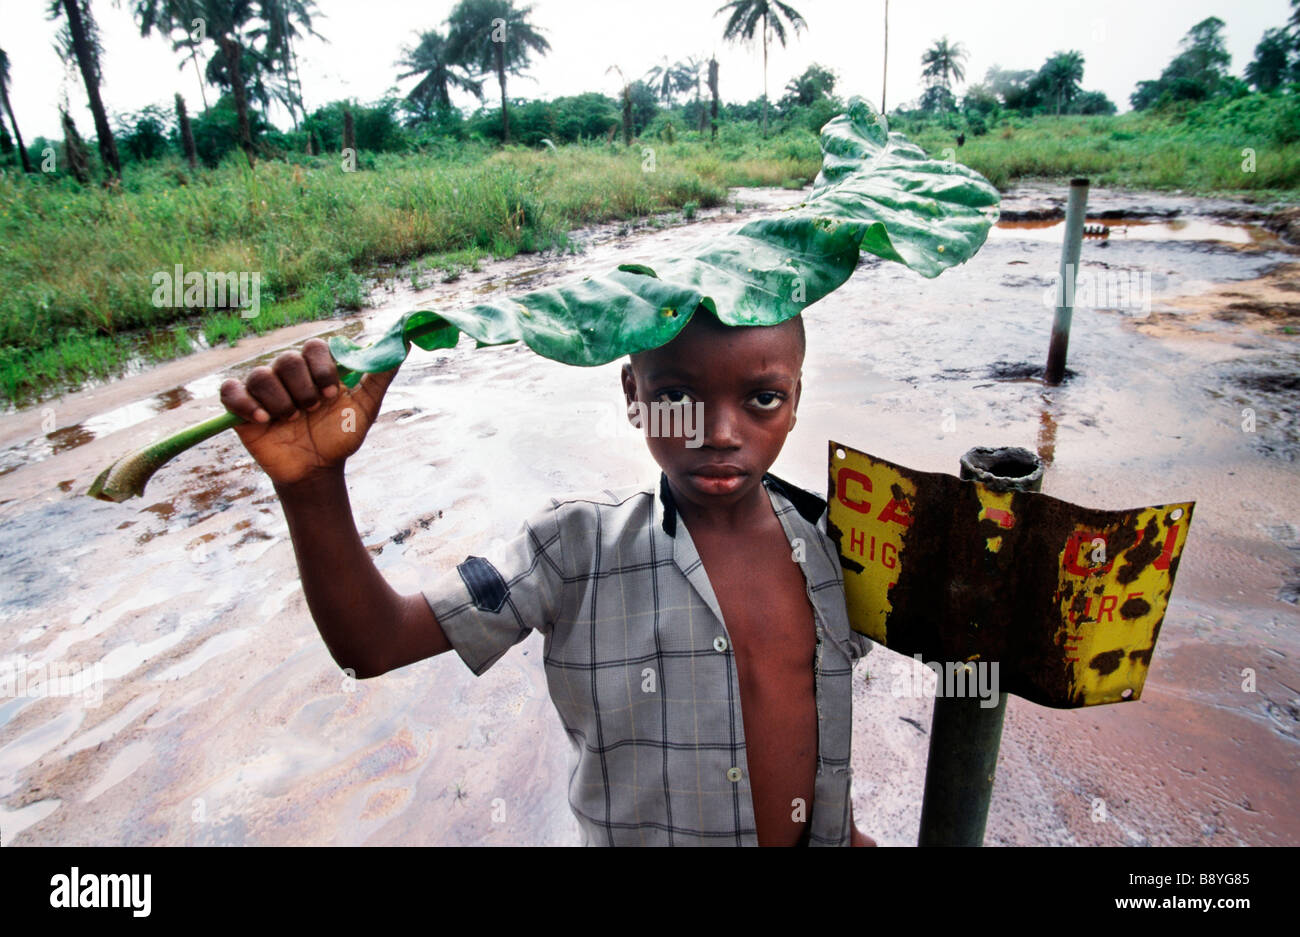 Nigeria: A boy stands besides a danger sign by an oil contaminated area in Ogoniland - Stock Image